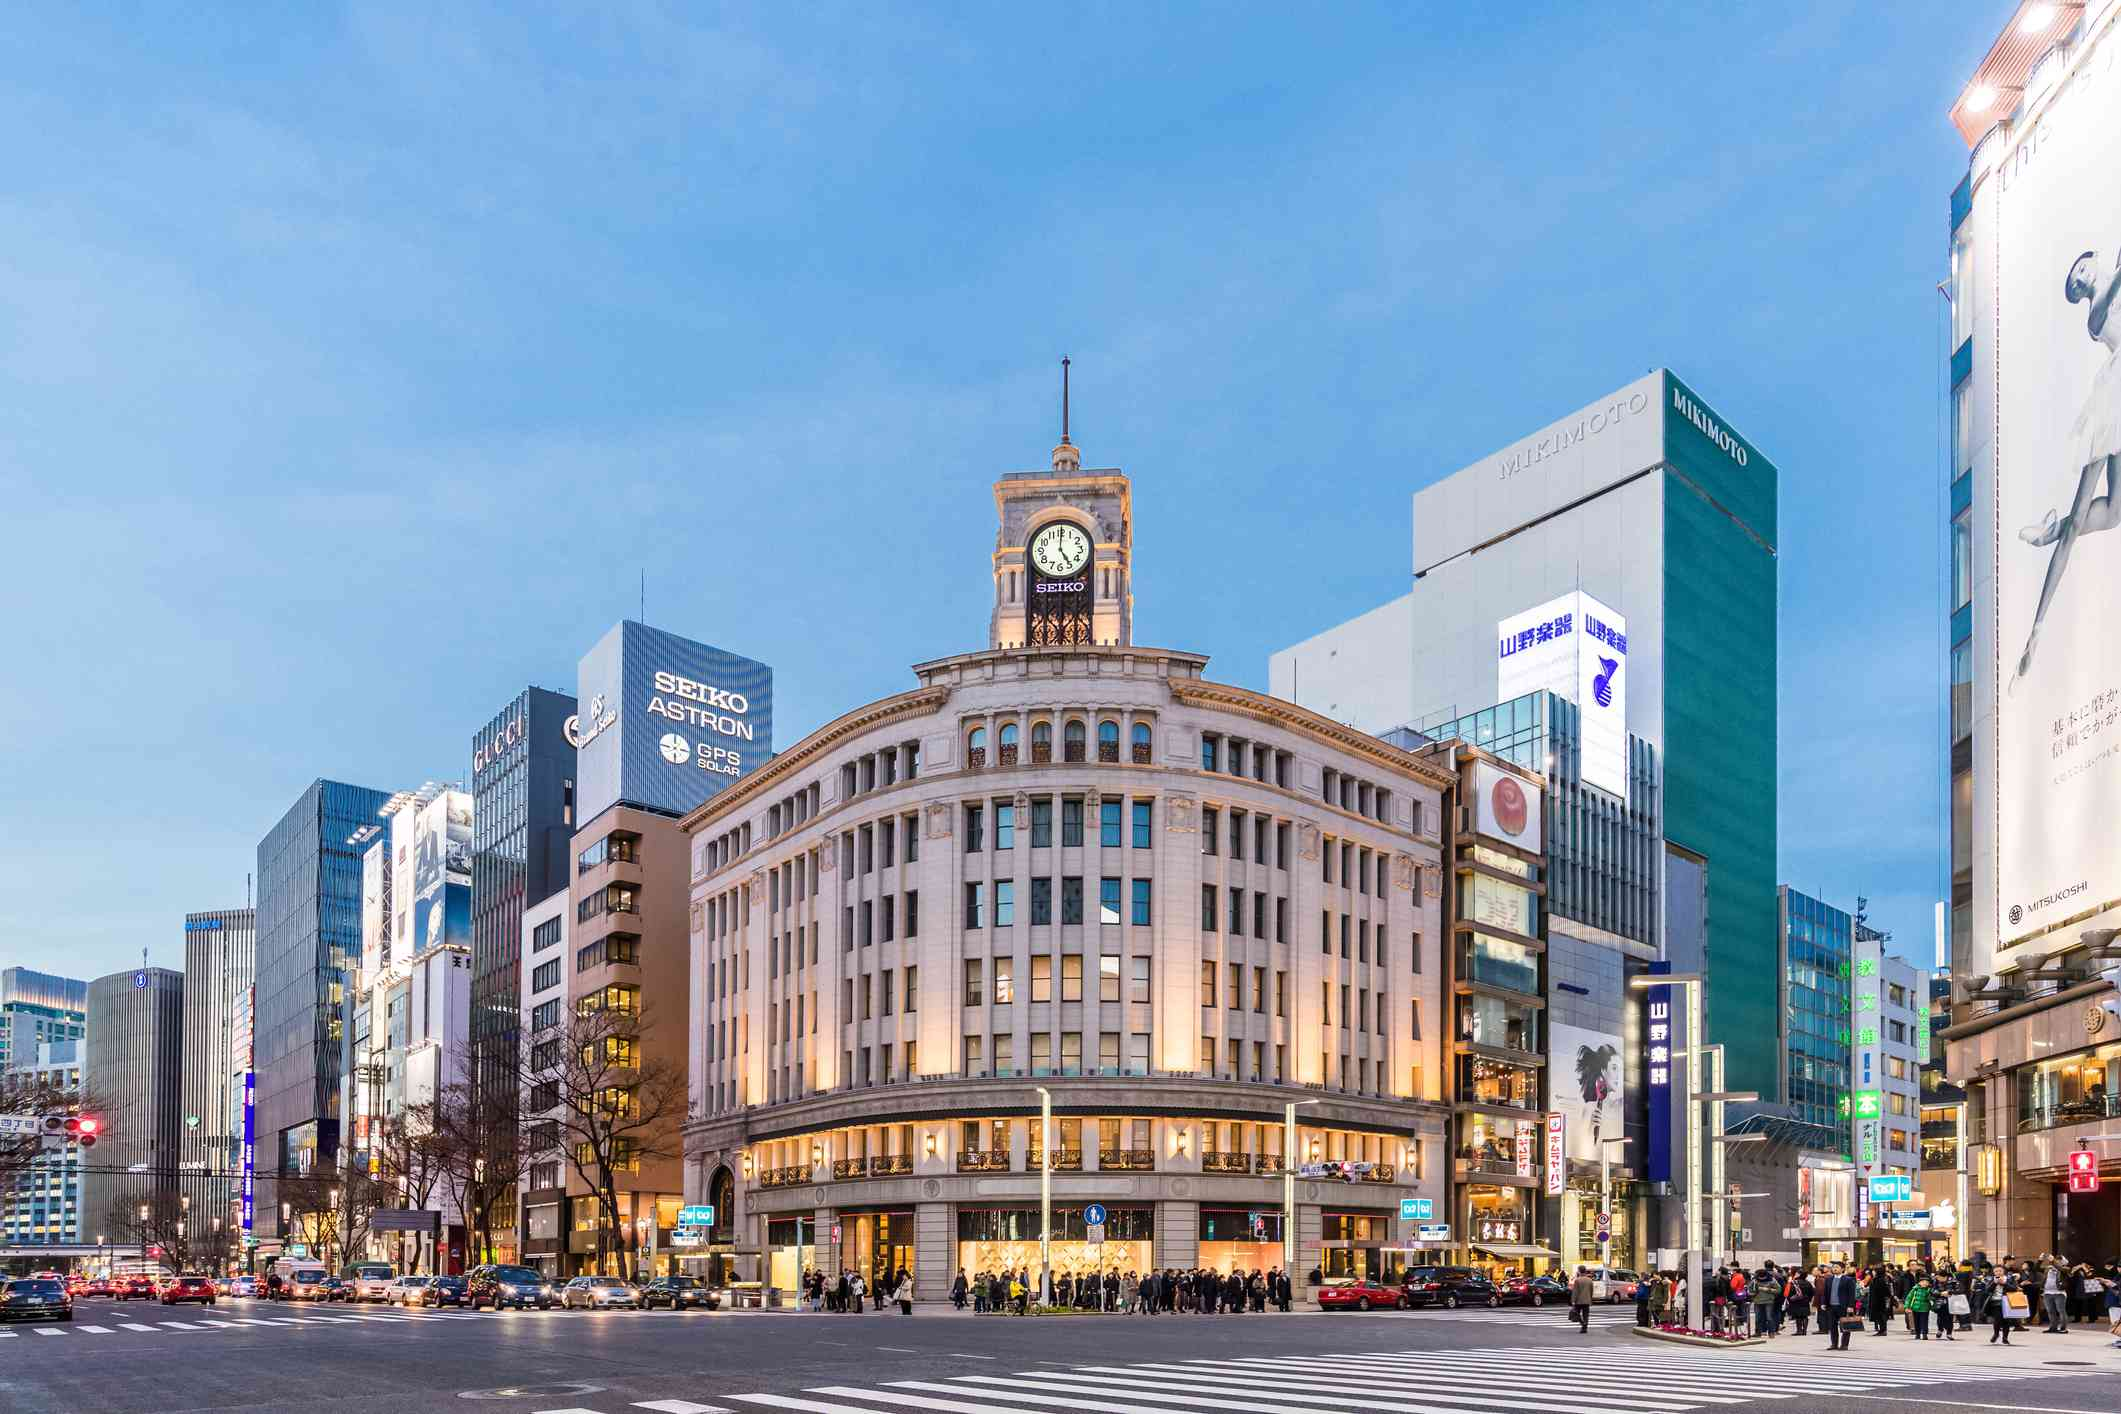 Cityscape in the Ginza District. The district offers high end retail shopping.